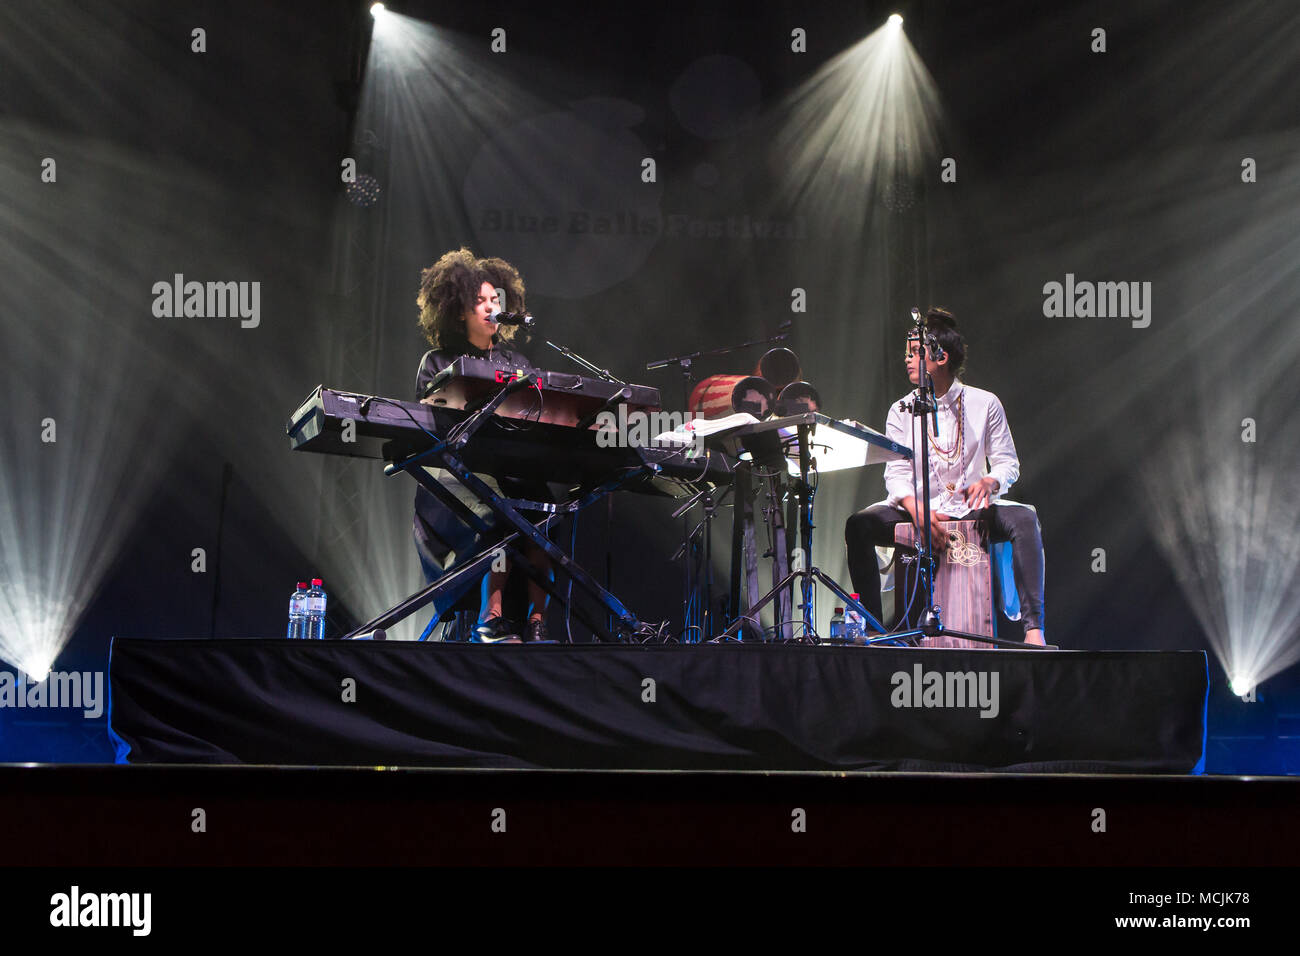 The French-Cuban music duo Ibeyi, which consists of the twin sisters Lisa-Kaindé and Naomi Díaz, will perform live at the Blue - Stock Image